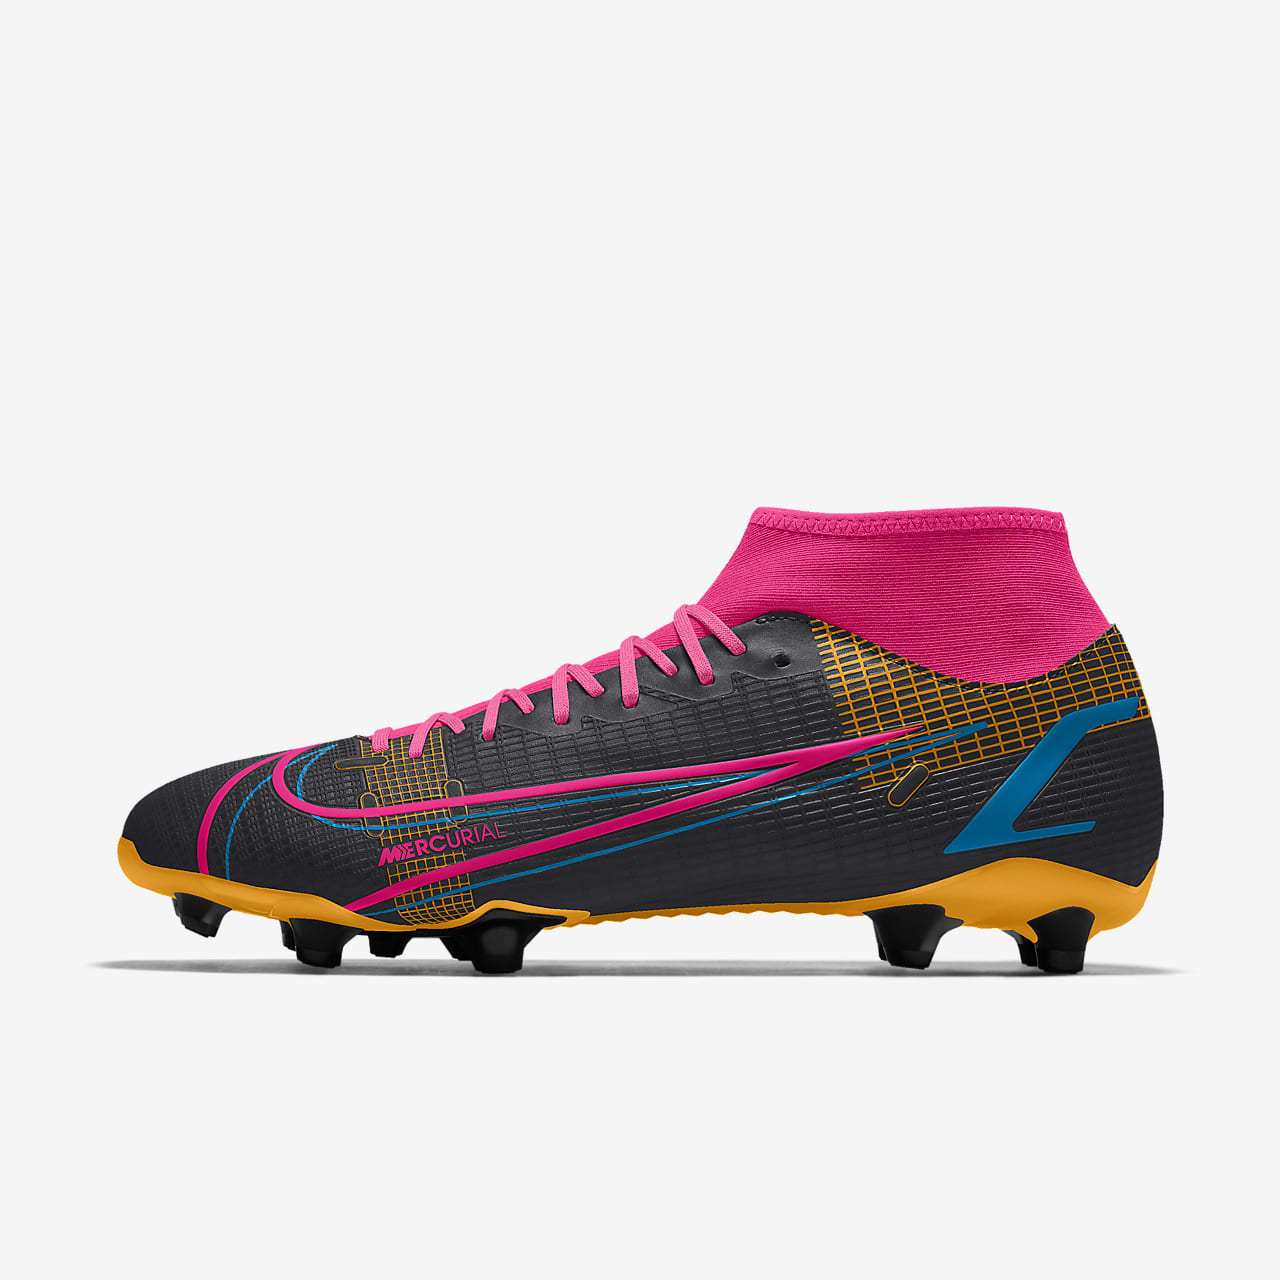 Nike Mercurial Superfly 8 Academy By You Custom Football Boot